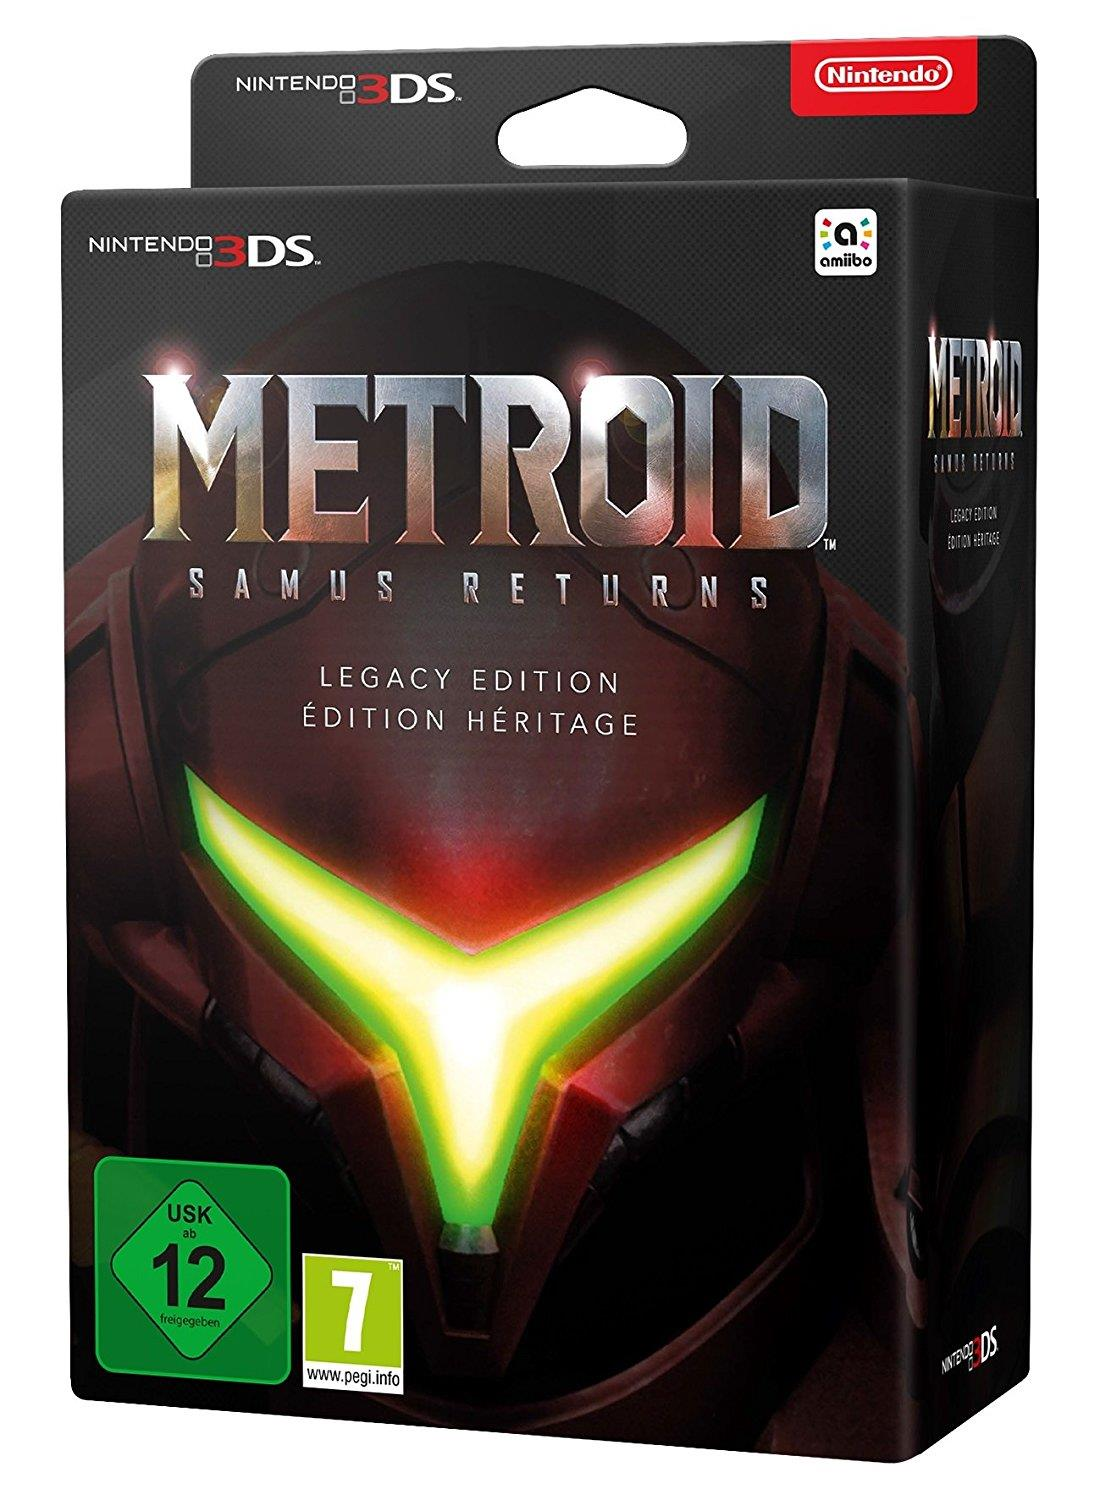 ELECTRONIC ARTS GAME NINTENDO 3DS METROID SAMUS RETURNS LEGACY EDITION